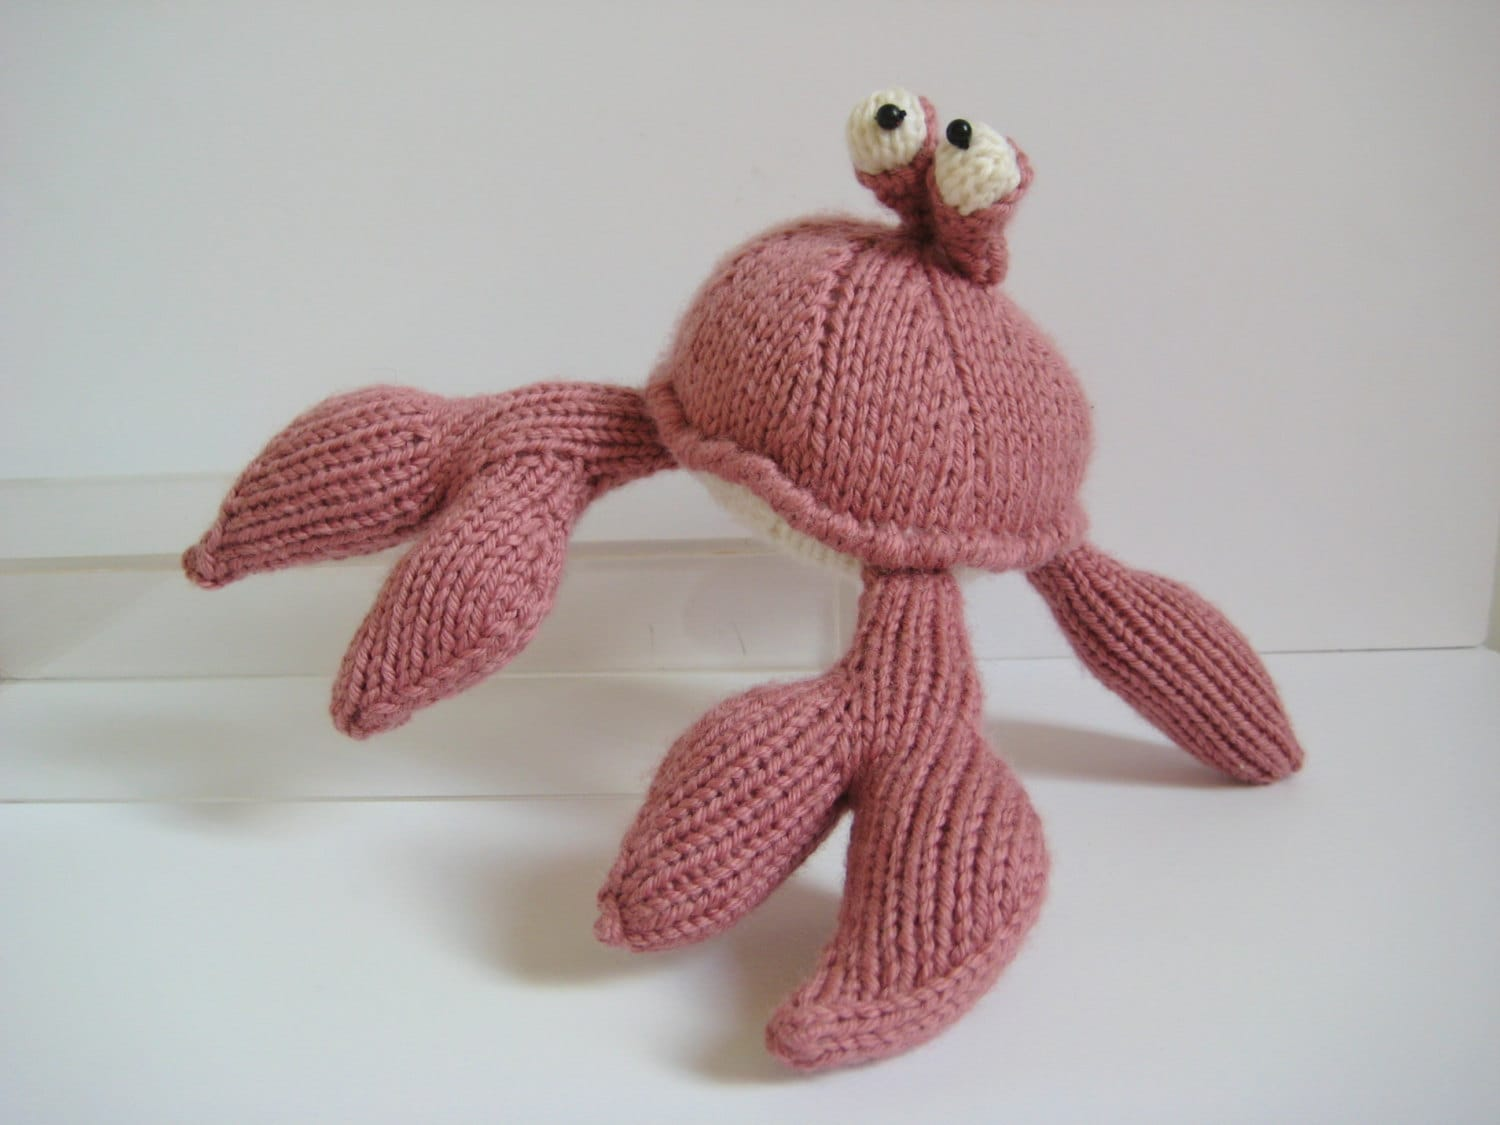 Pinky the Crab toy knitting pattern by fluffandfuzz on Etsy